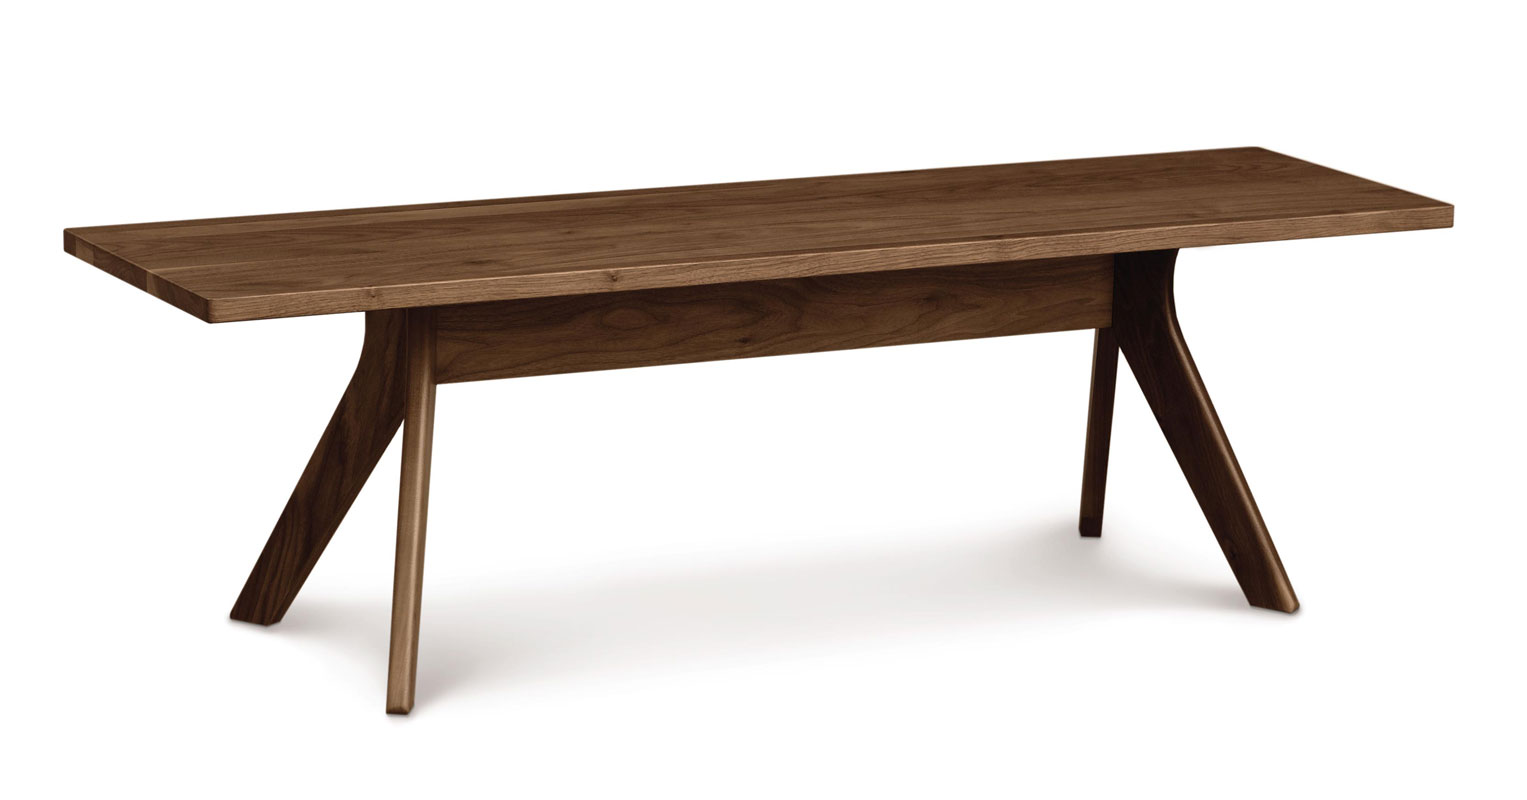 Copeland Audrey Bench in Walnut